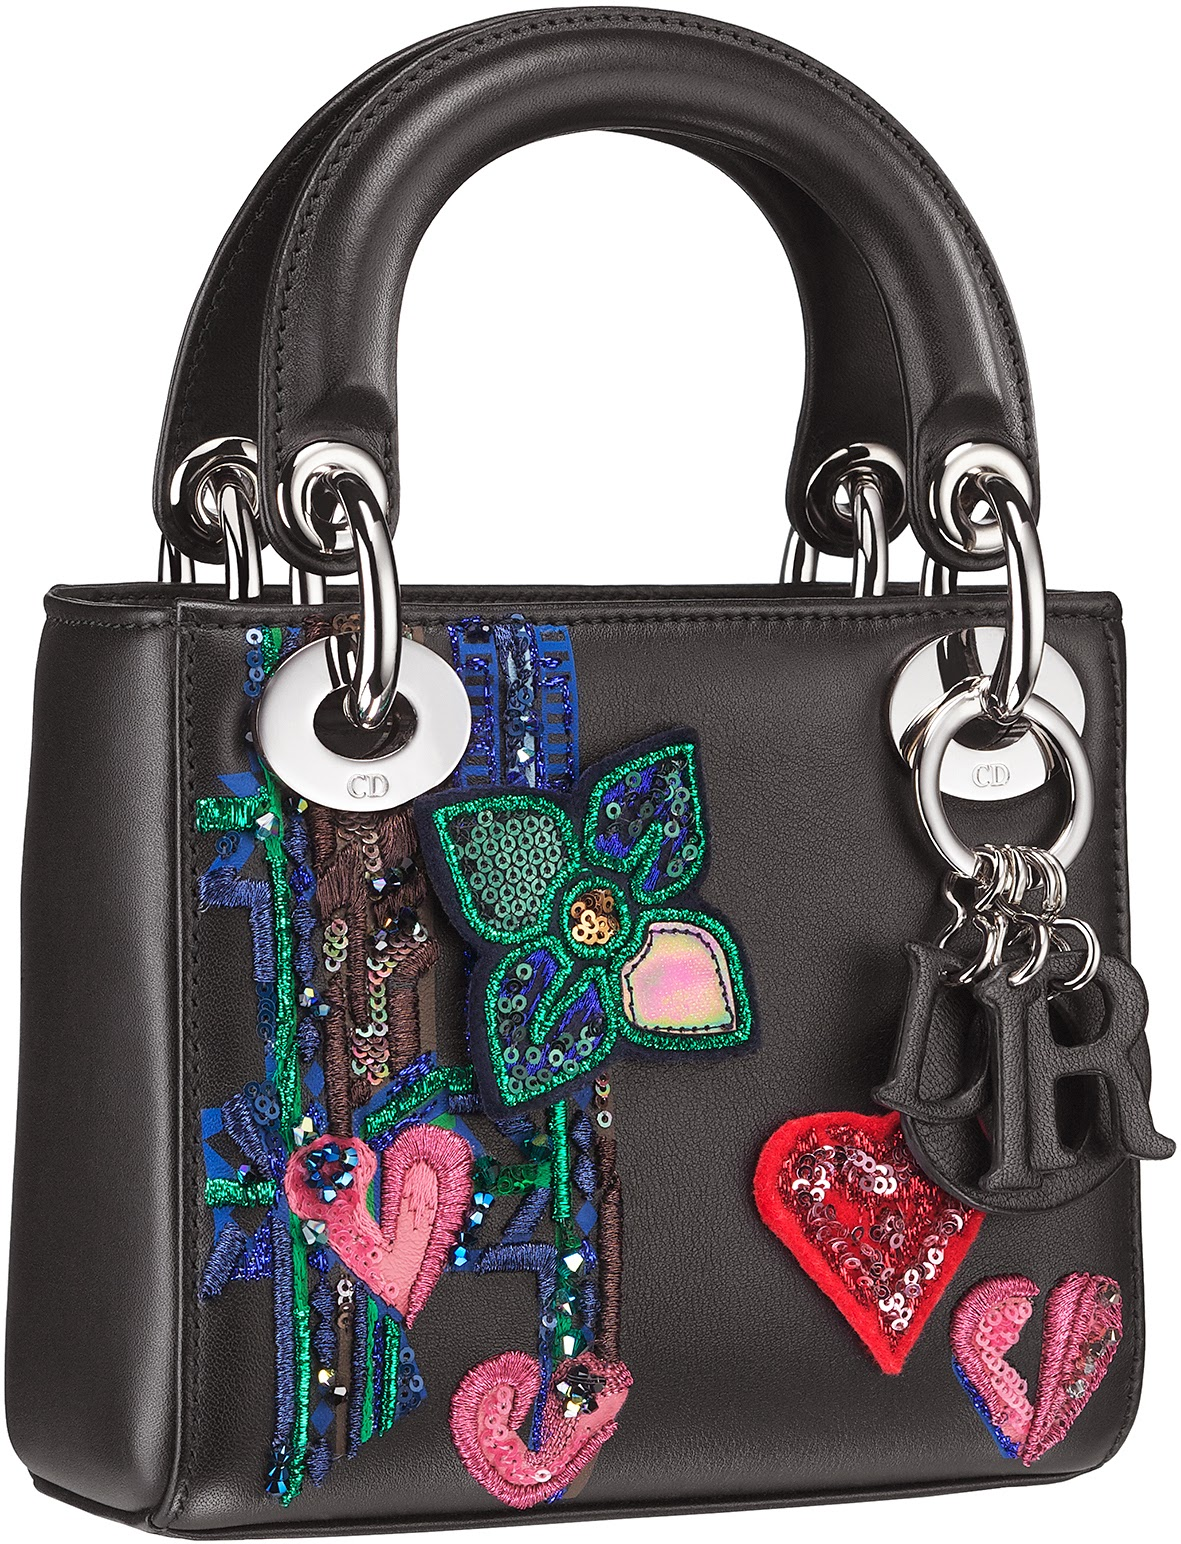 Dior's Micro Lady Dior For Pre-Fall 2015!